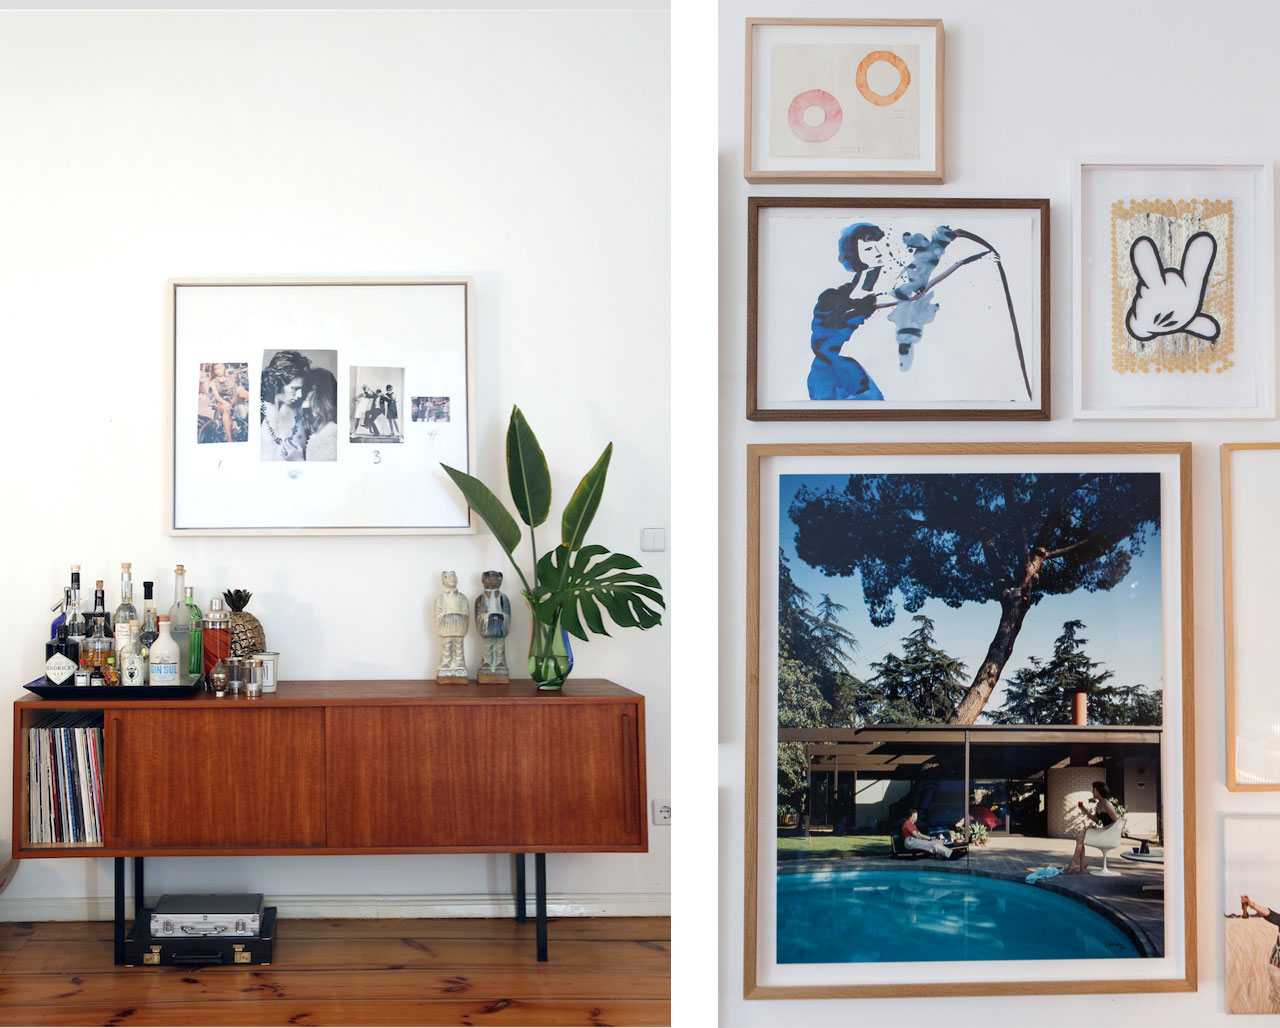 On the left: a collage work by Richard Prince and on the right a photograph by Julius Shulman. Images © Juliane Spaete